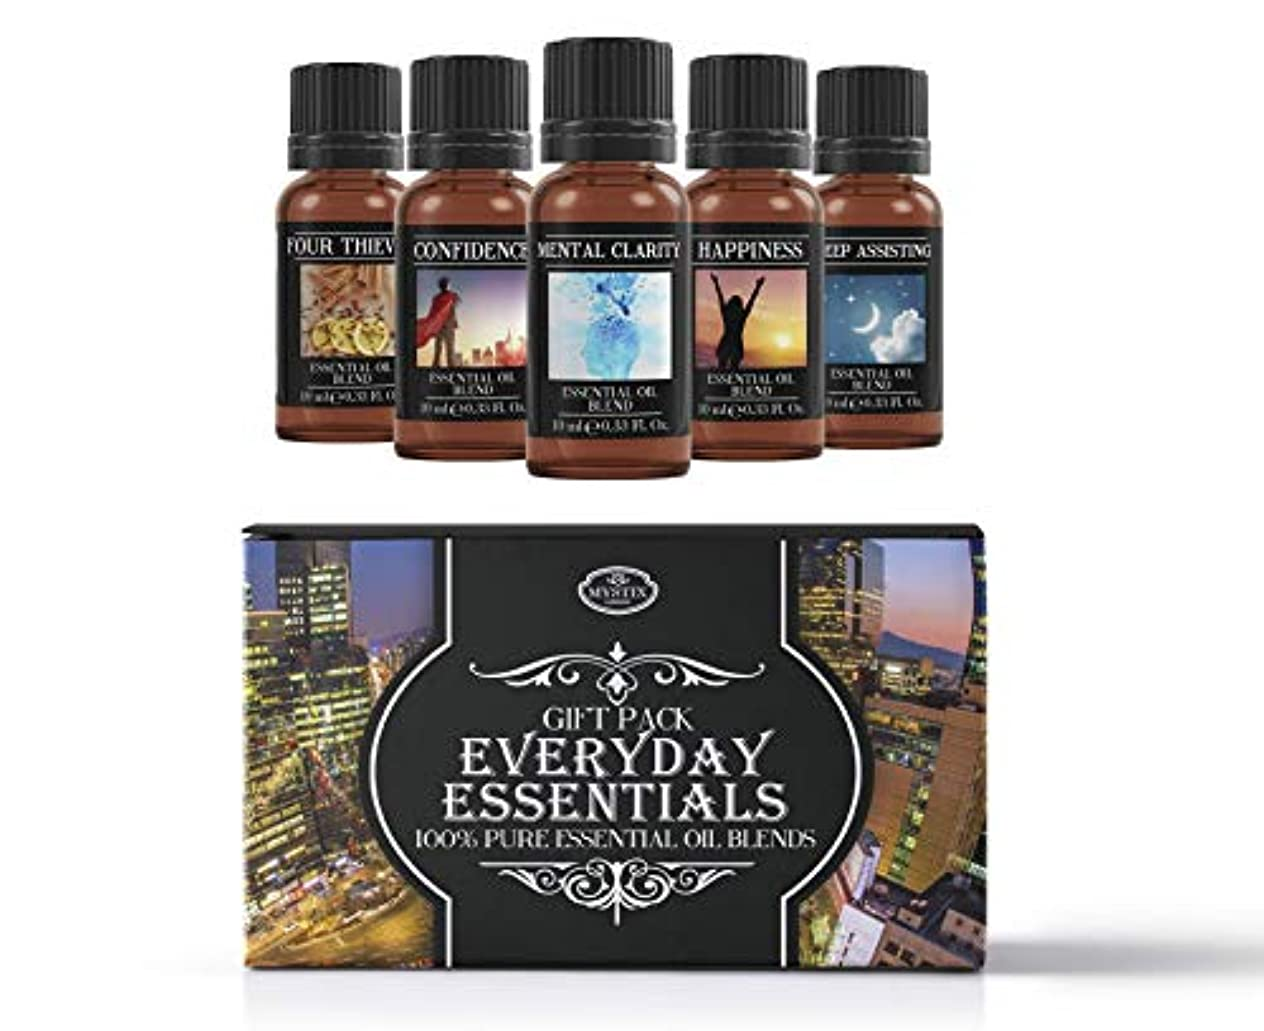 Everyday Essentials   Essential Oil Blend Gift Pack   Confidence, Four Thieves, Happiness, Mental Clarity, Sleep...